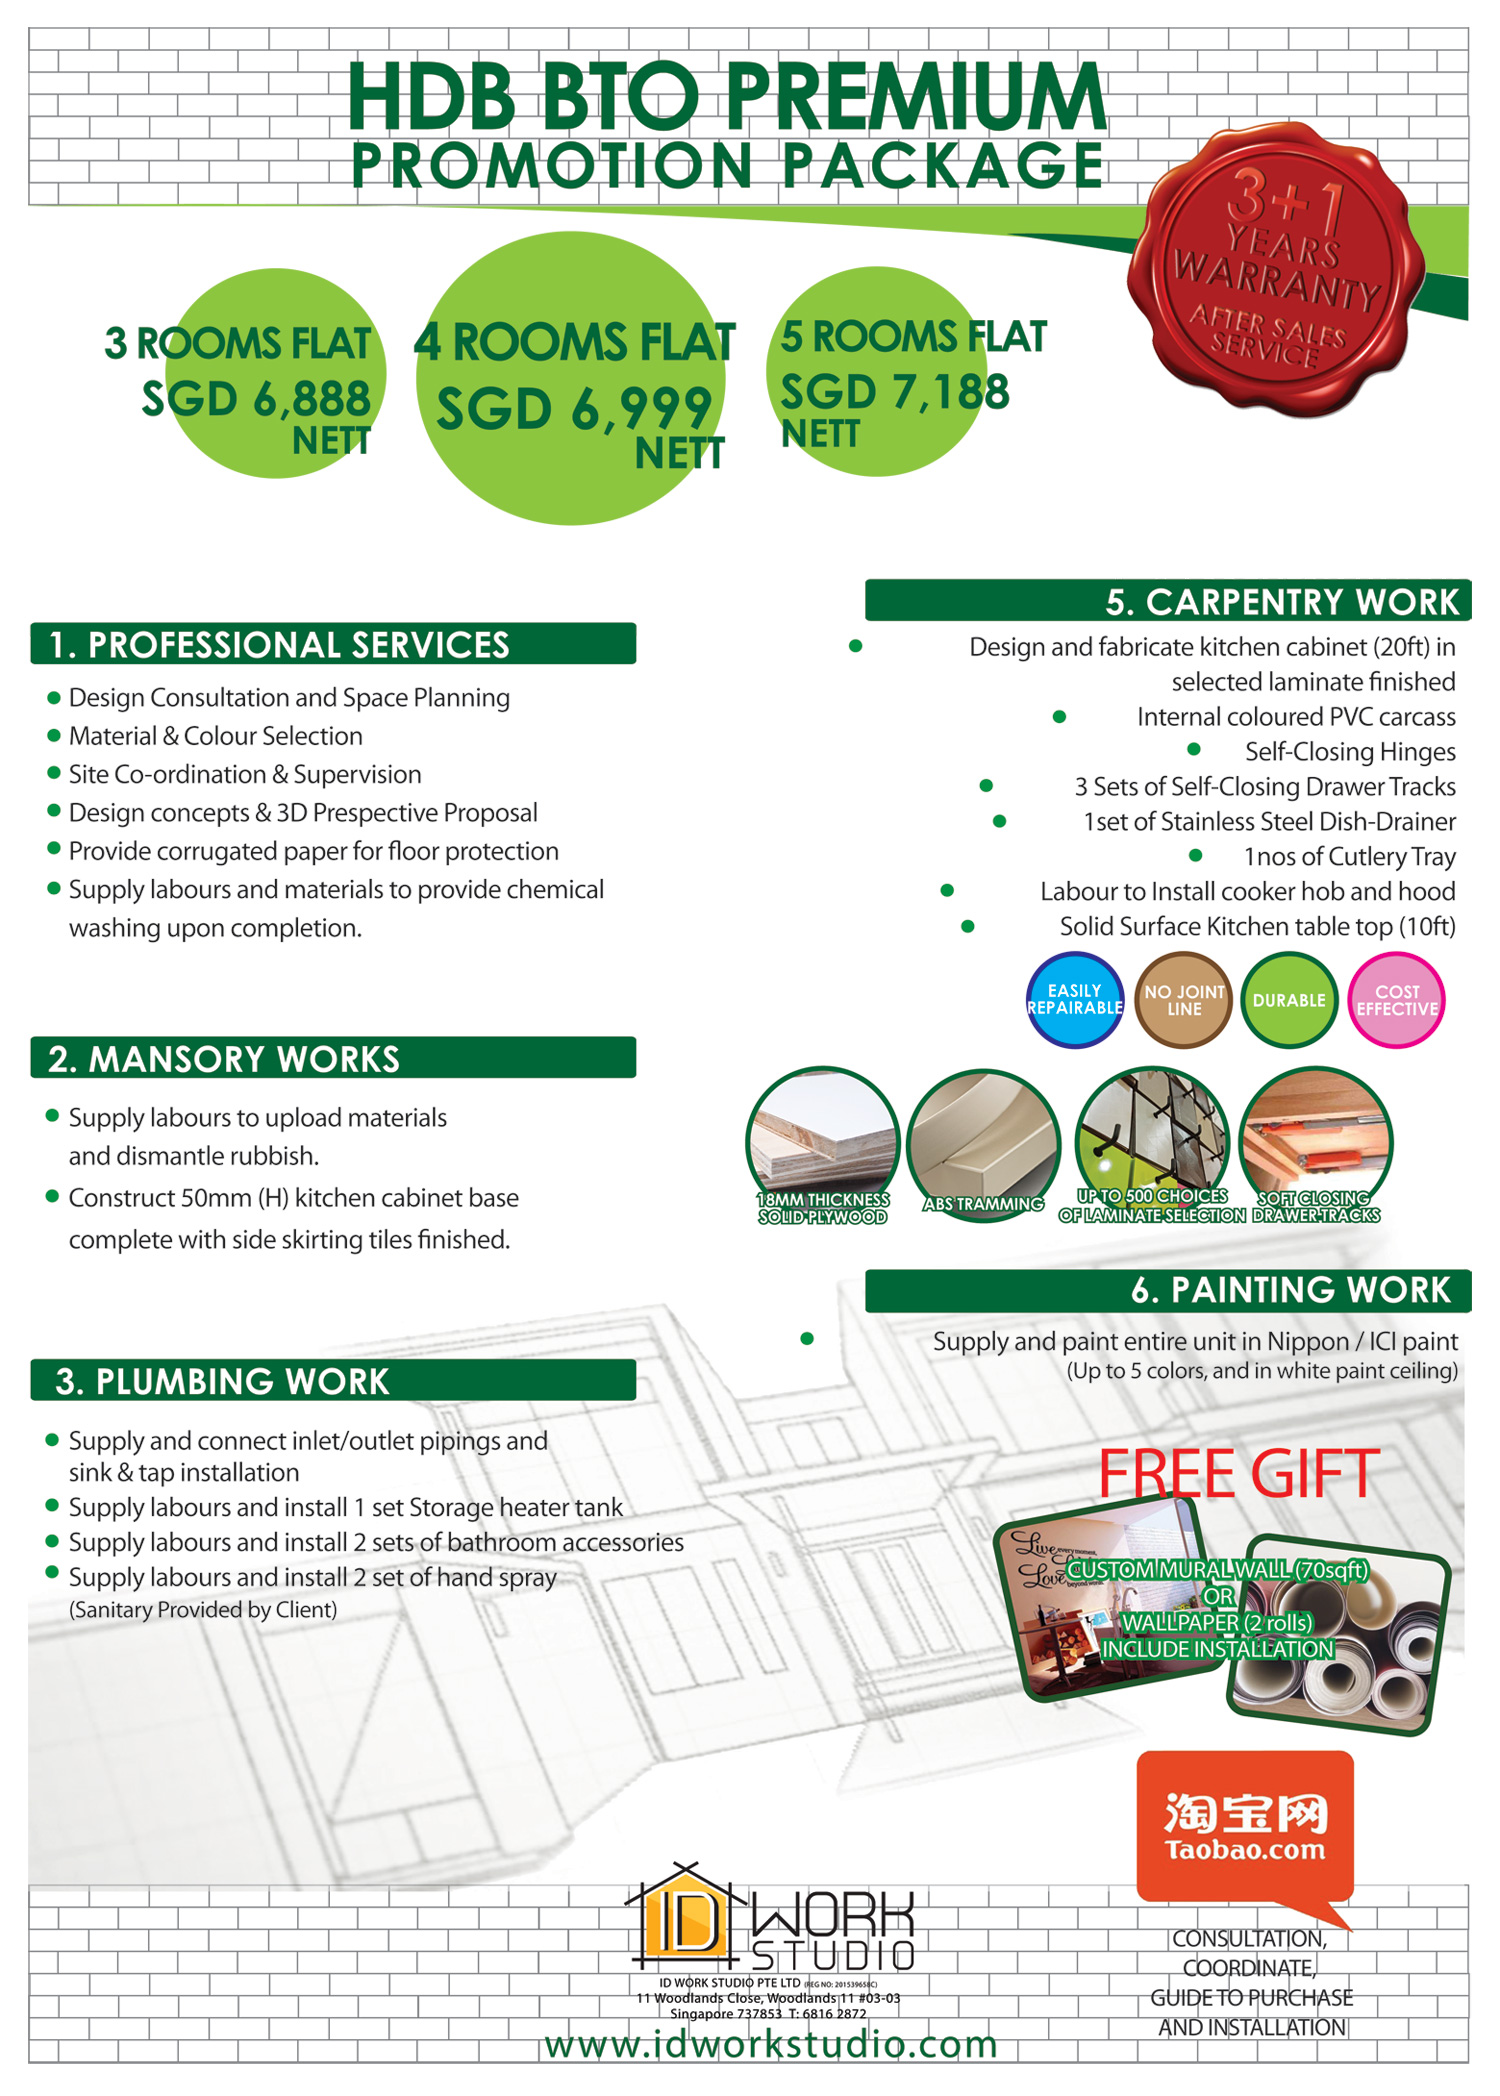 HDB BTO Premium Promotion Package